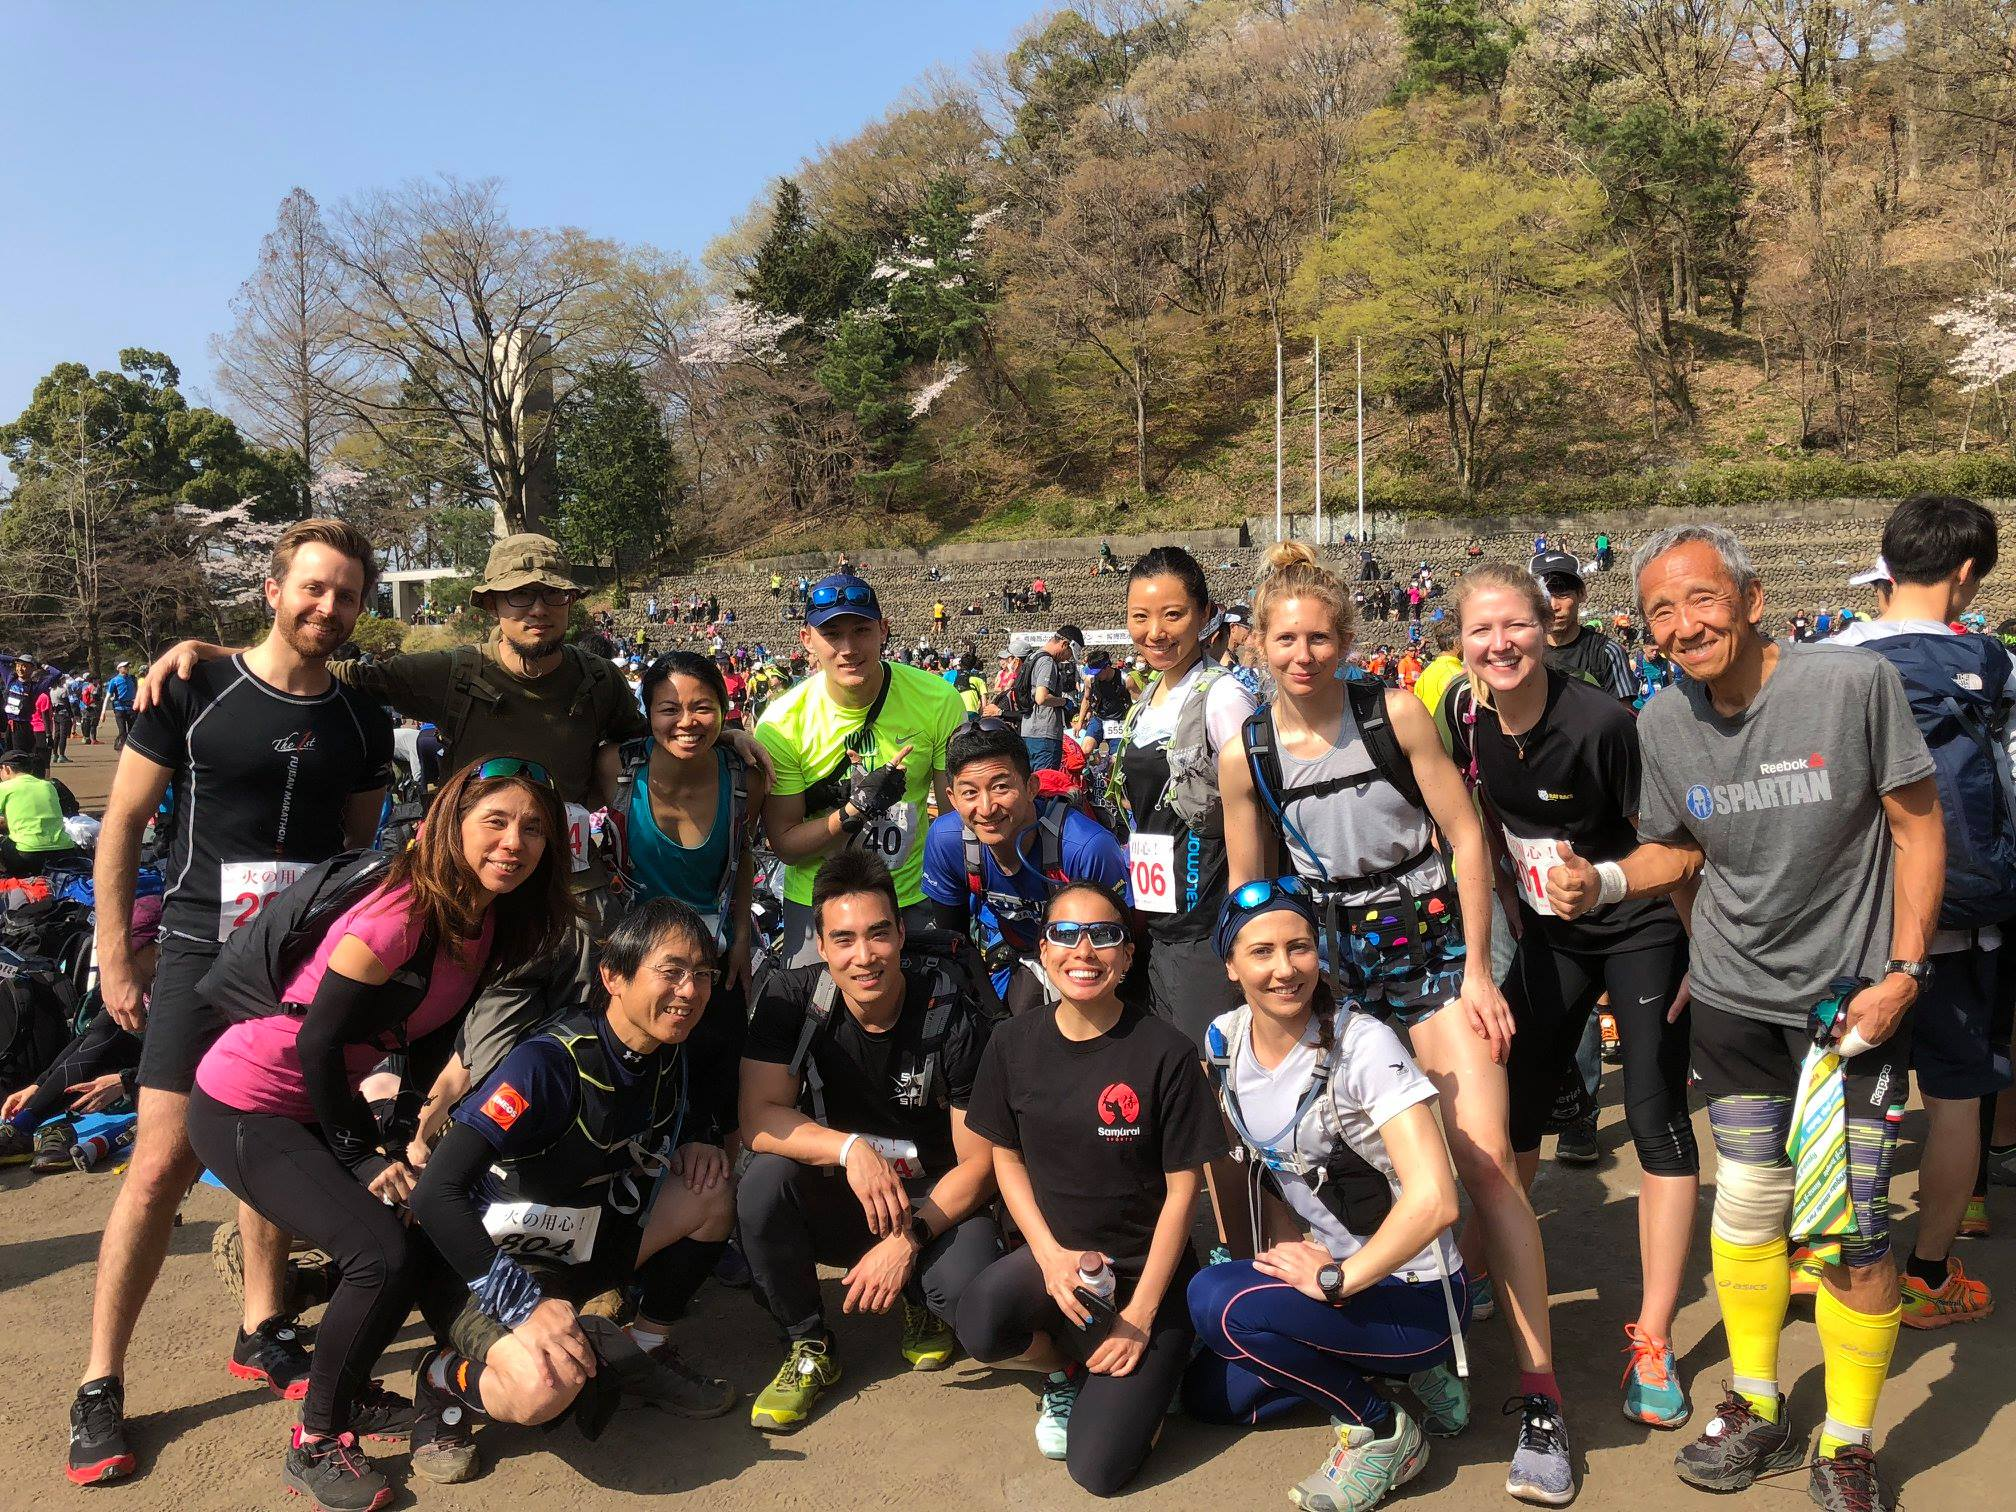 Diverse group of trail runners gathered for group photo